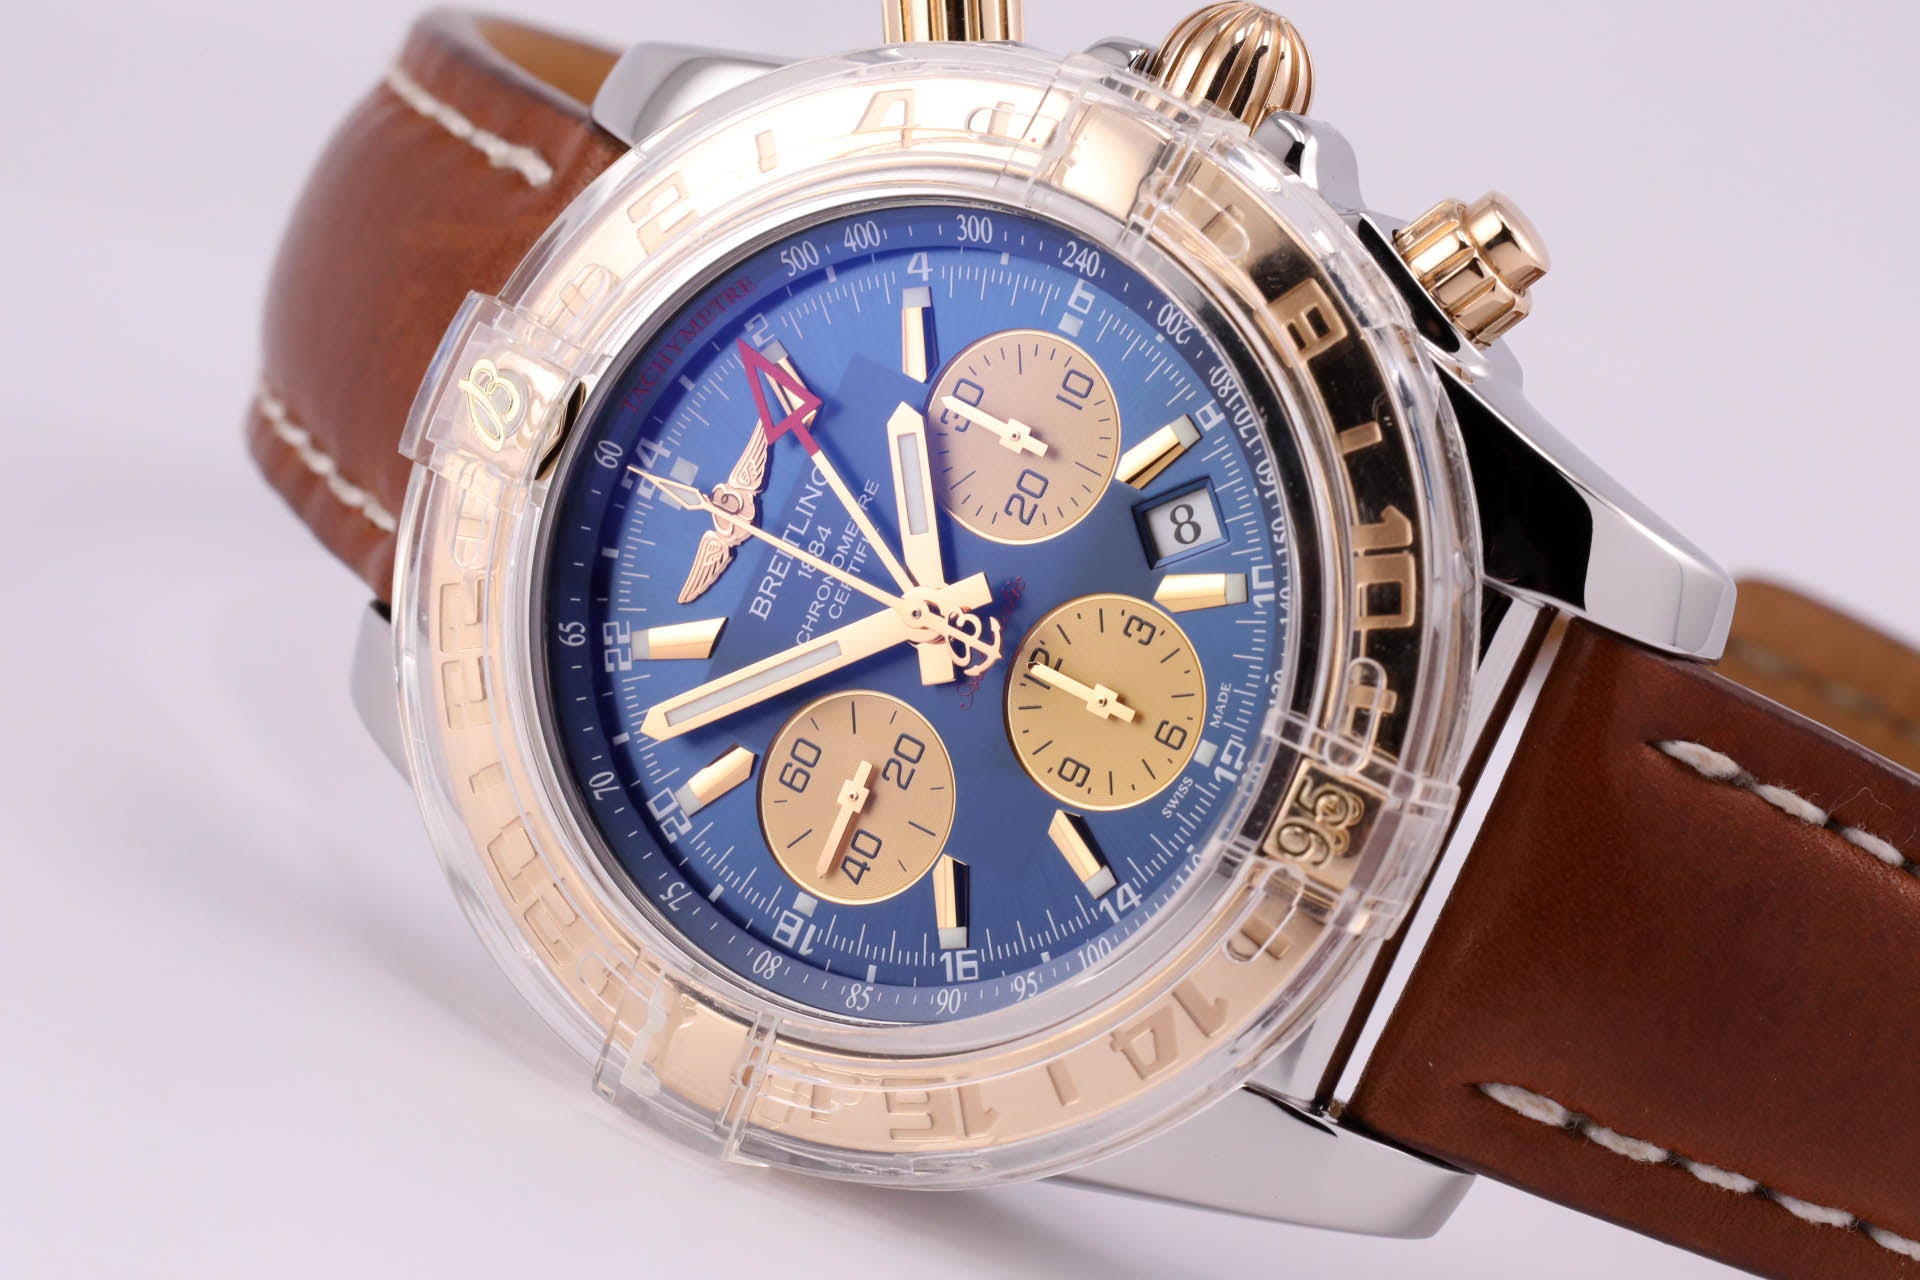 Factory refurbished Breitling Chronomat 44 GMT 18kt gold/SS Blue Dial with Extra Strap/Buckle